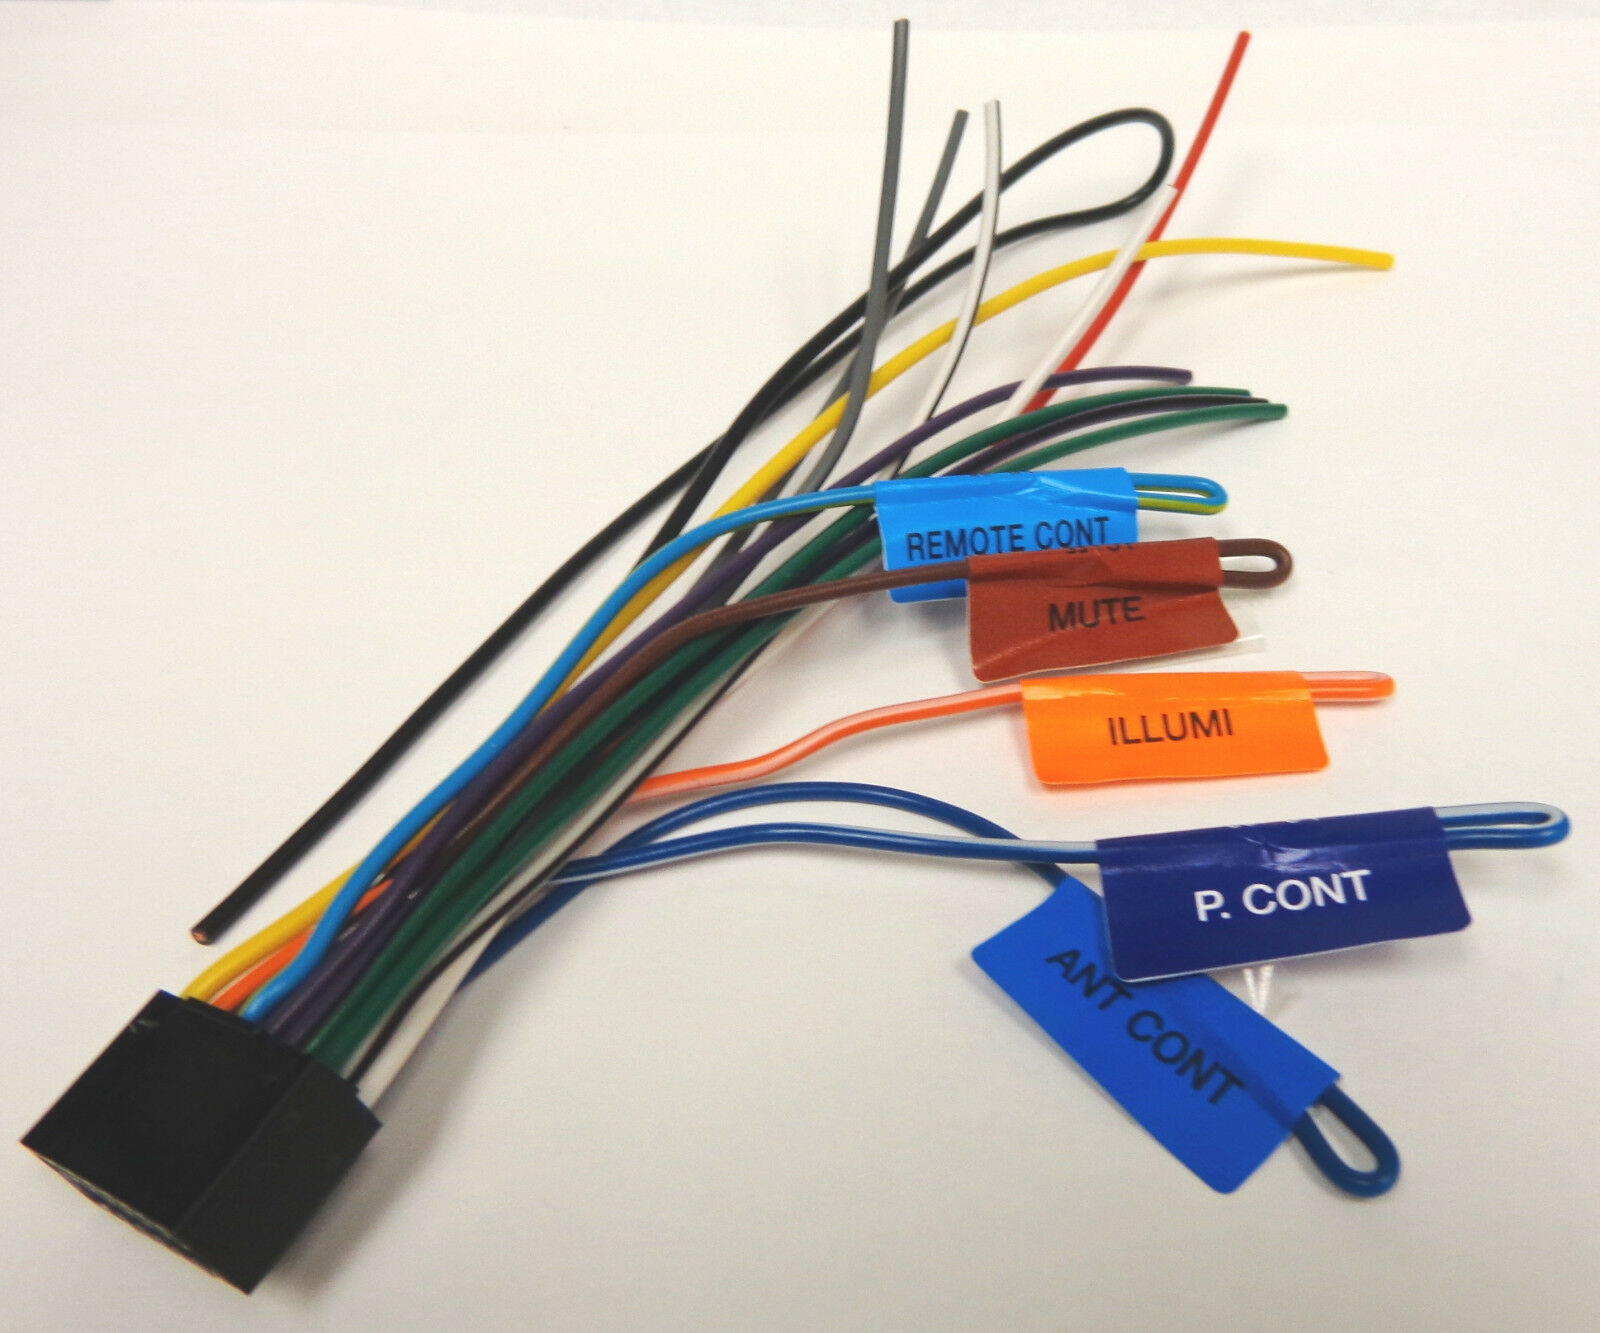 Kenwood Original Wiring Harness Ddx672Bh Ddx773Bh Ddx793 Ddx9702S Ddx9902S  1 of 1Only 4 available ...